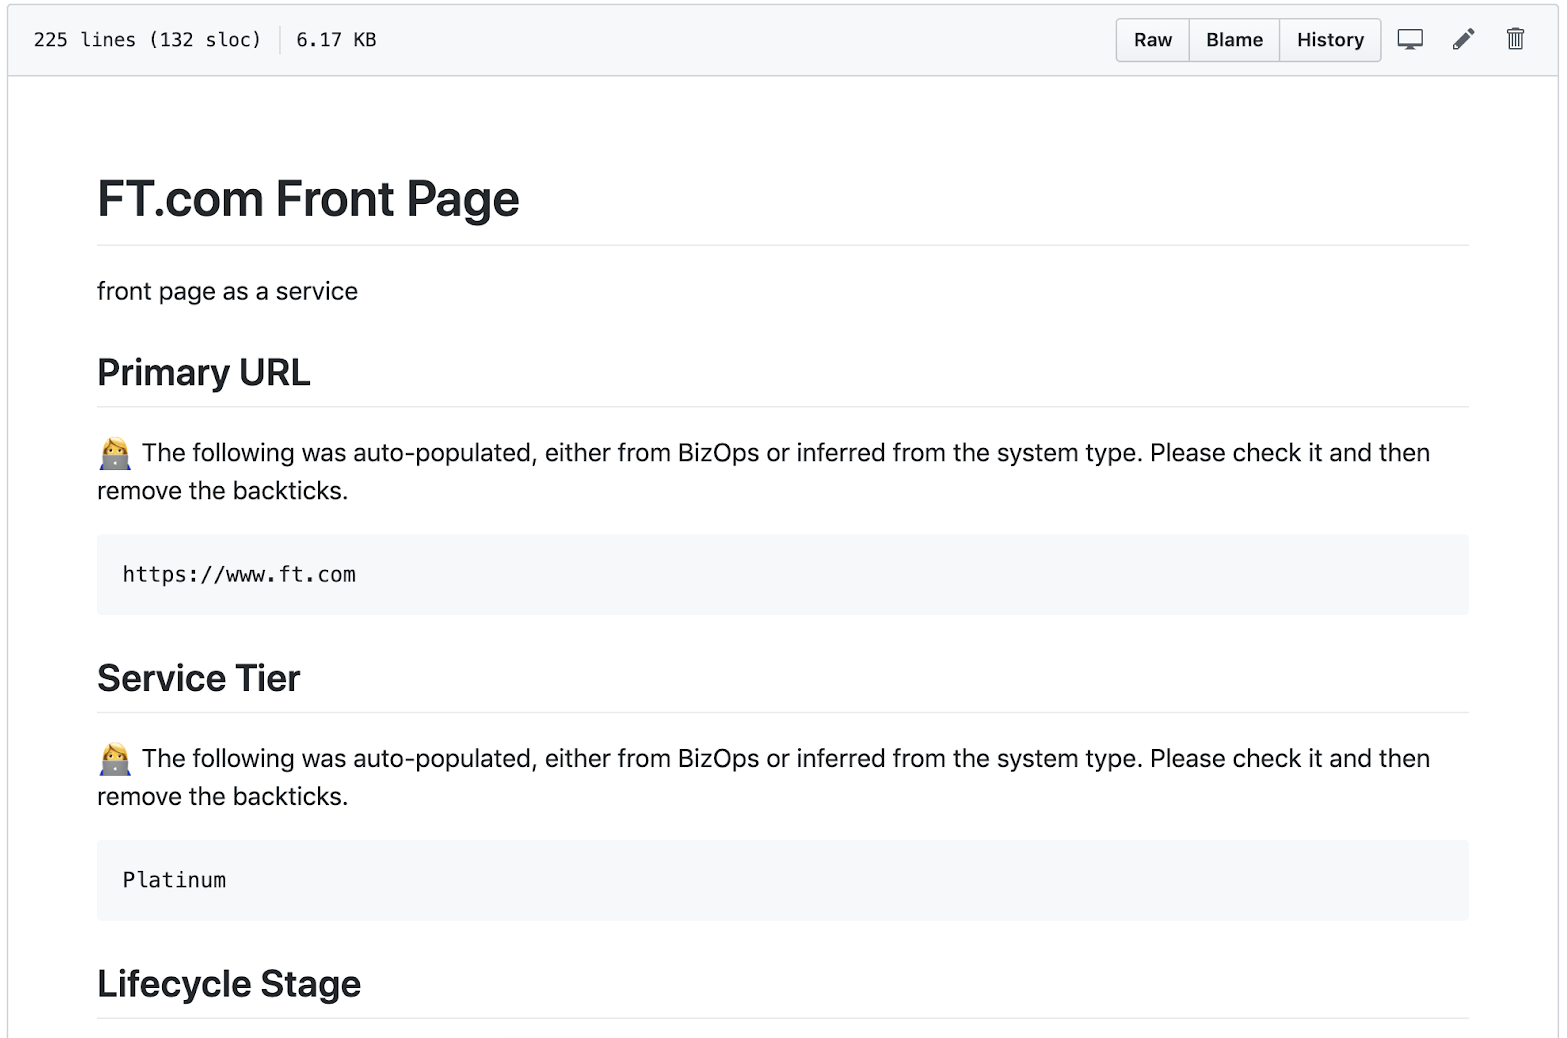 A runbook in markdown, with pre-populated content and tips